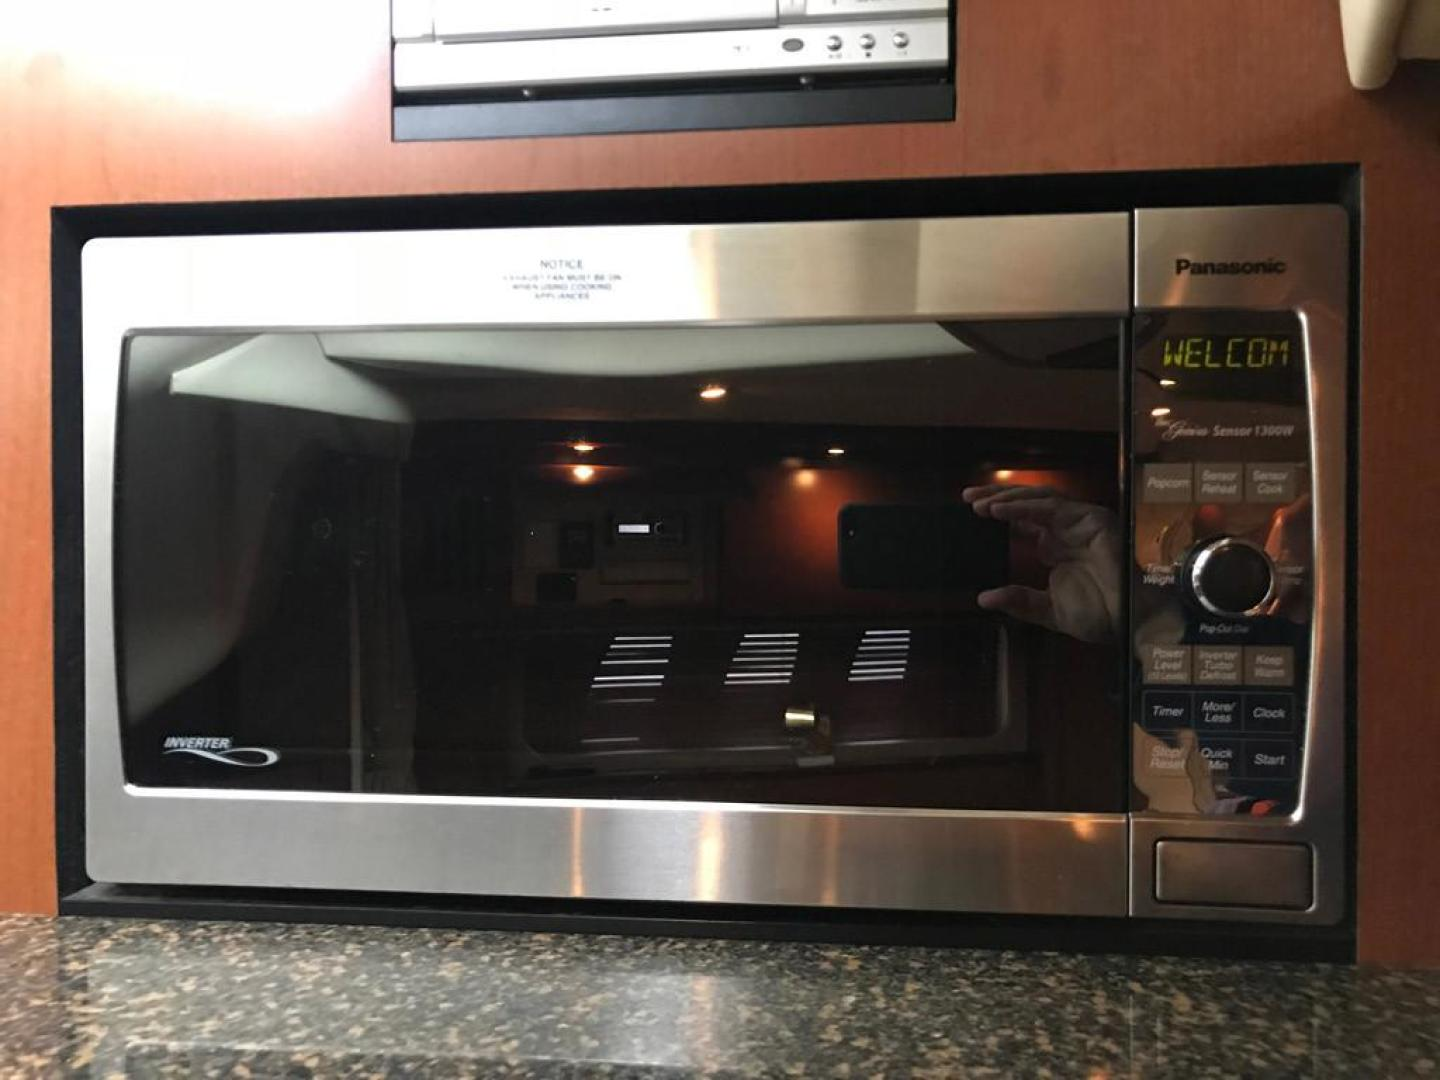 Sea-Ray-38-Sundancer-2007-El-Don-North-Beach-Maryland-United-States-Galley-Microwave-923257